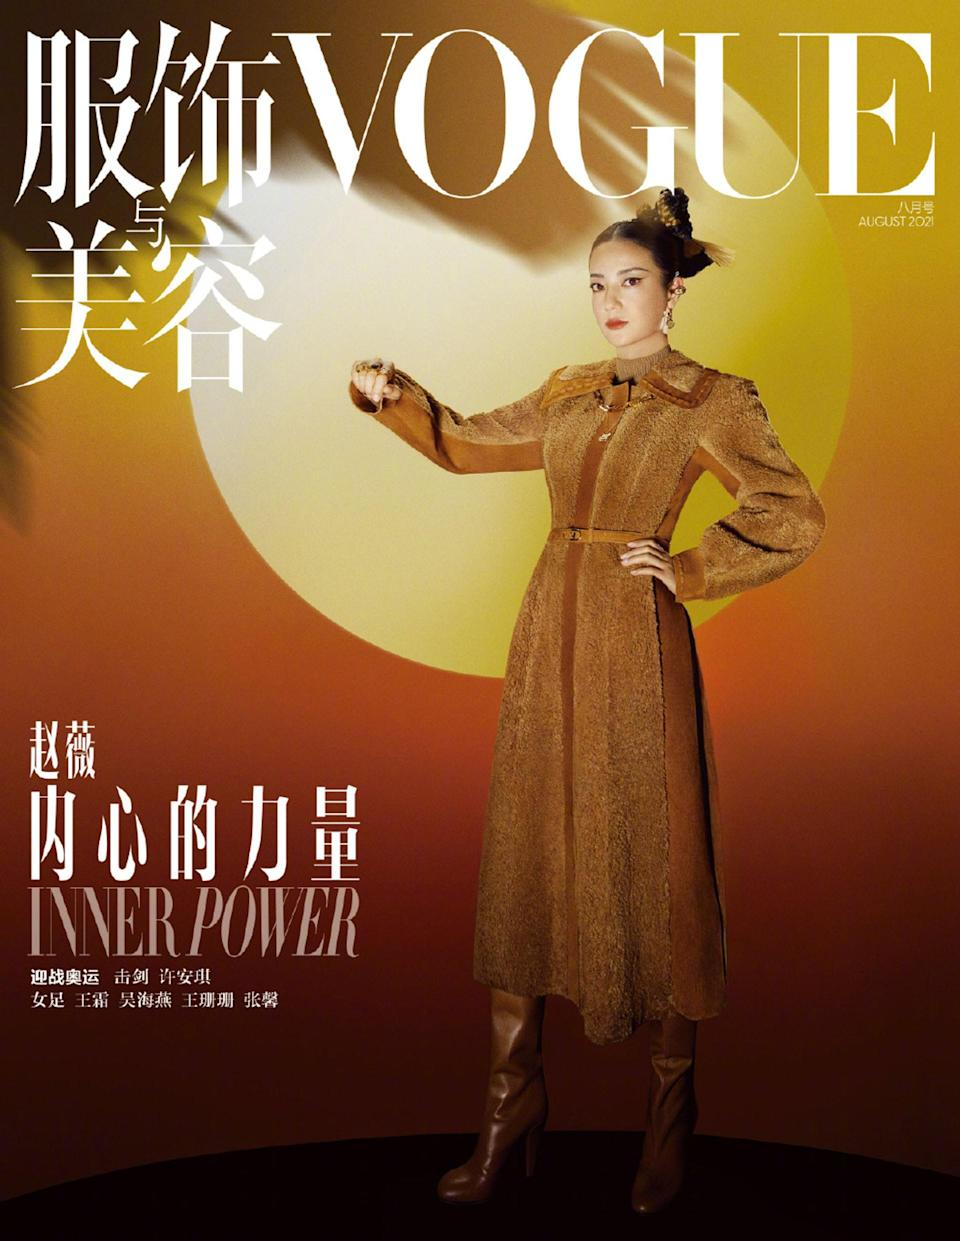 Zhao Wei on the cover of Vogue China August issue - Credit: Conde Nast China